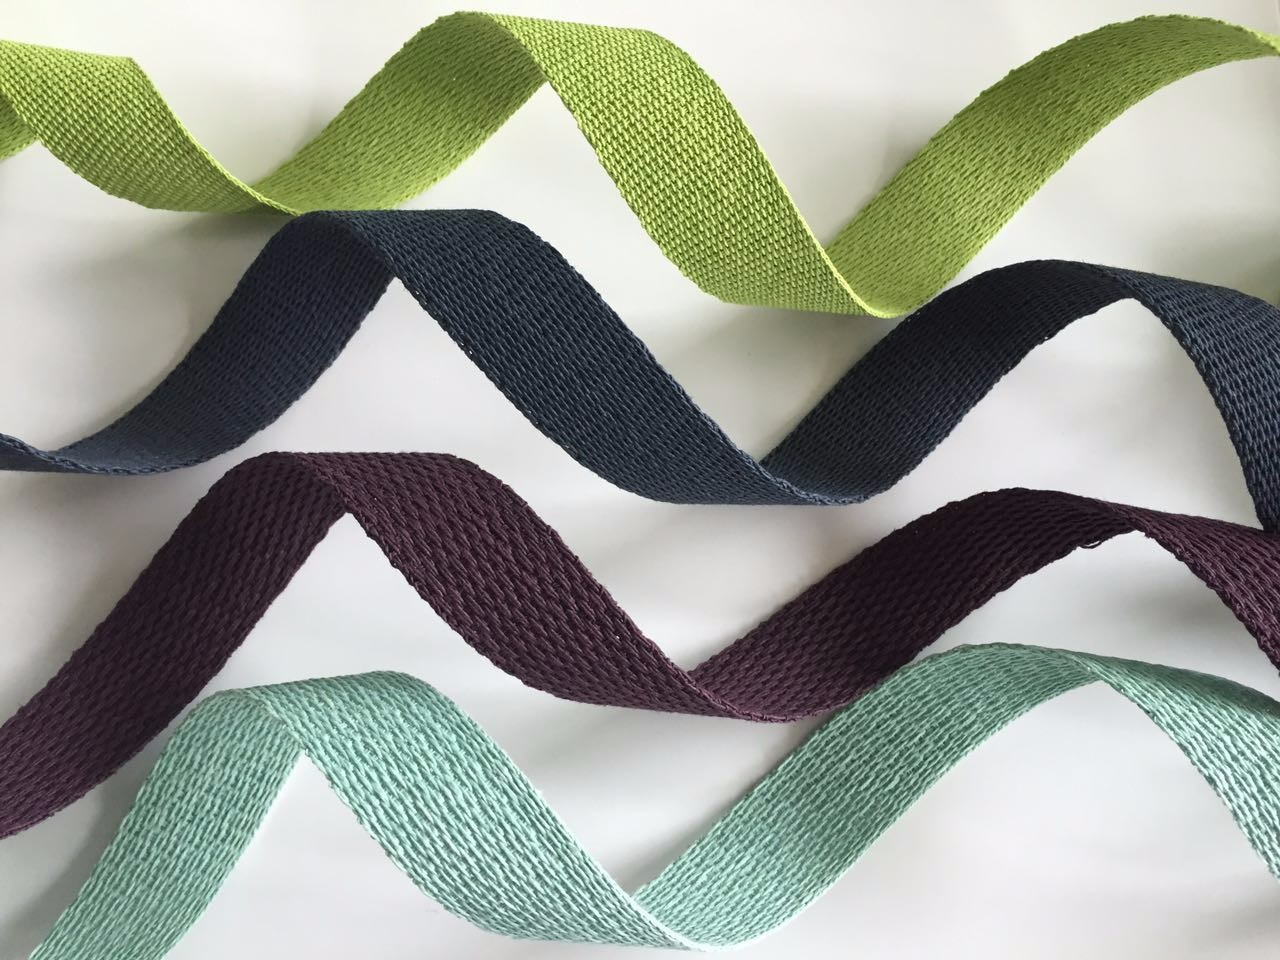 Paper Yarn, Knitted Paper Cord, Paper Braid Webbing, Braided Paper Twine,Paper Cloth